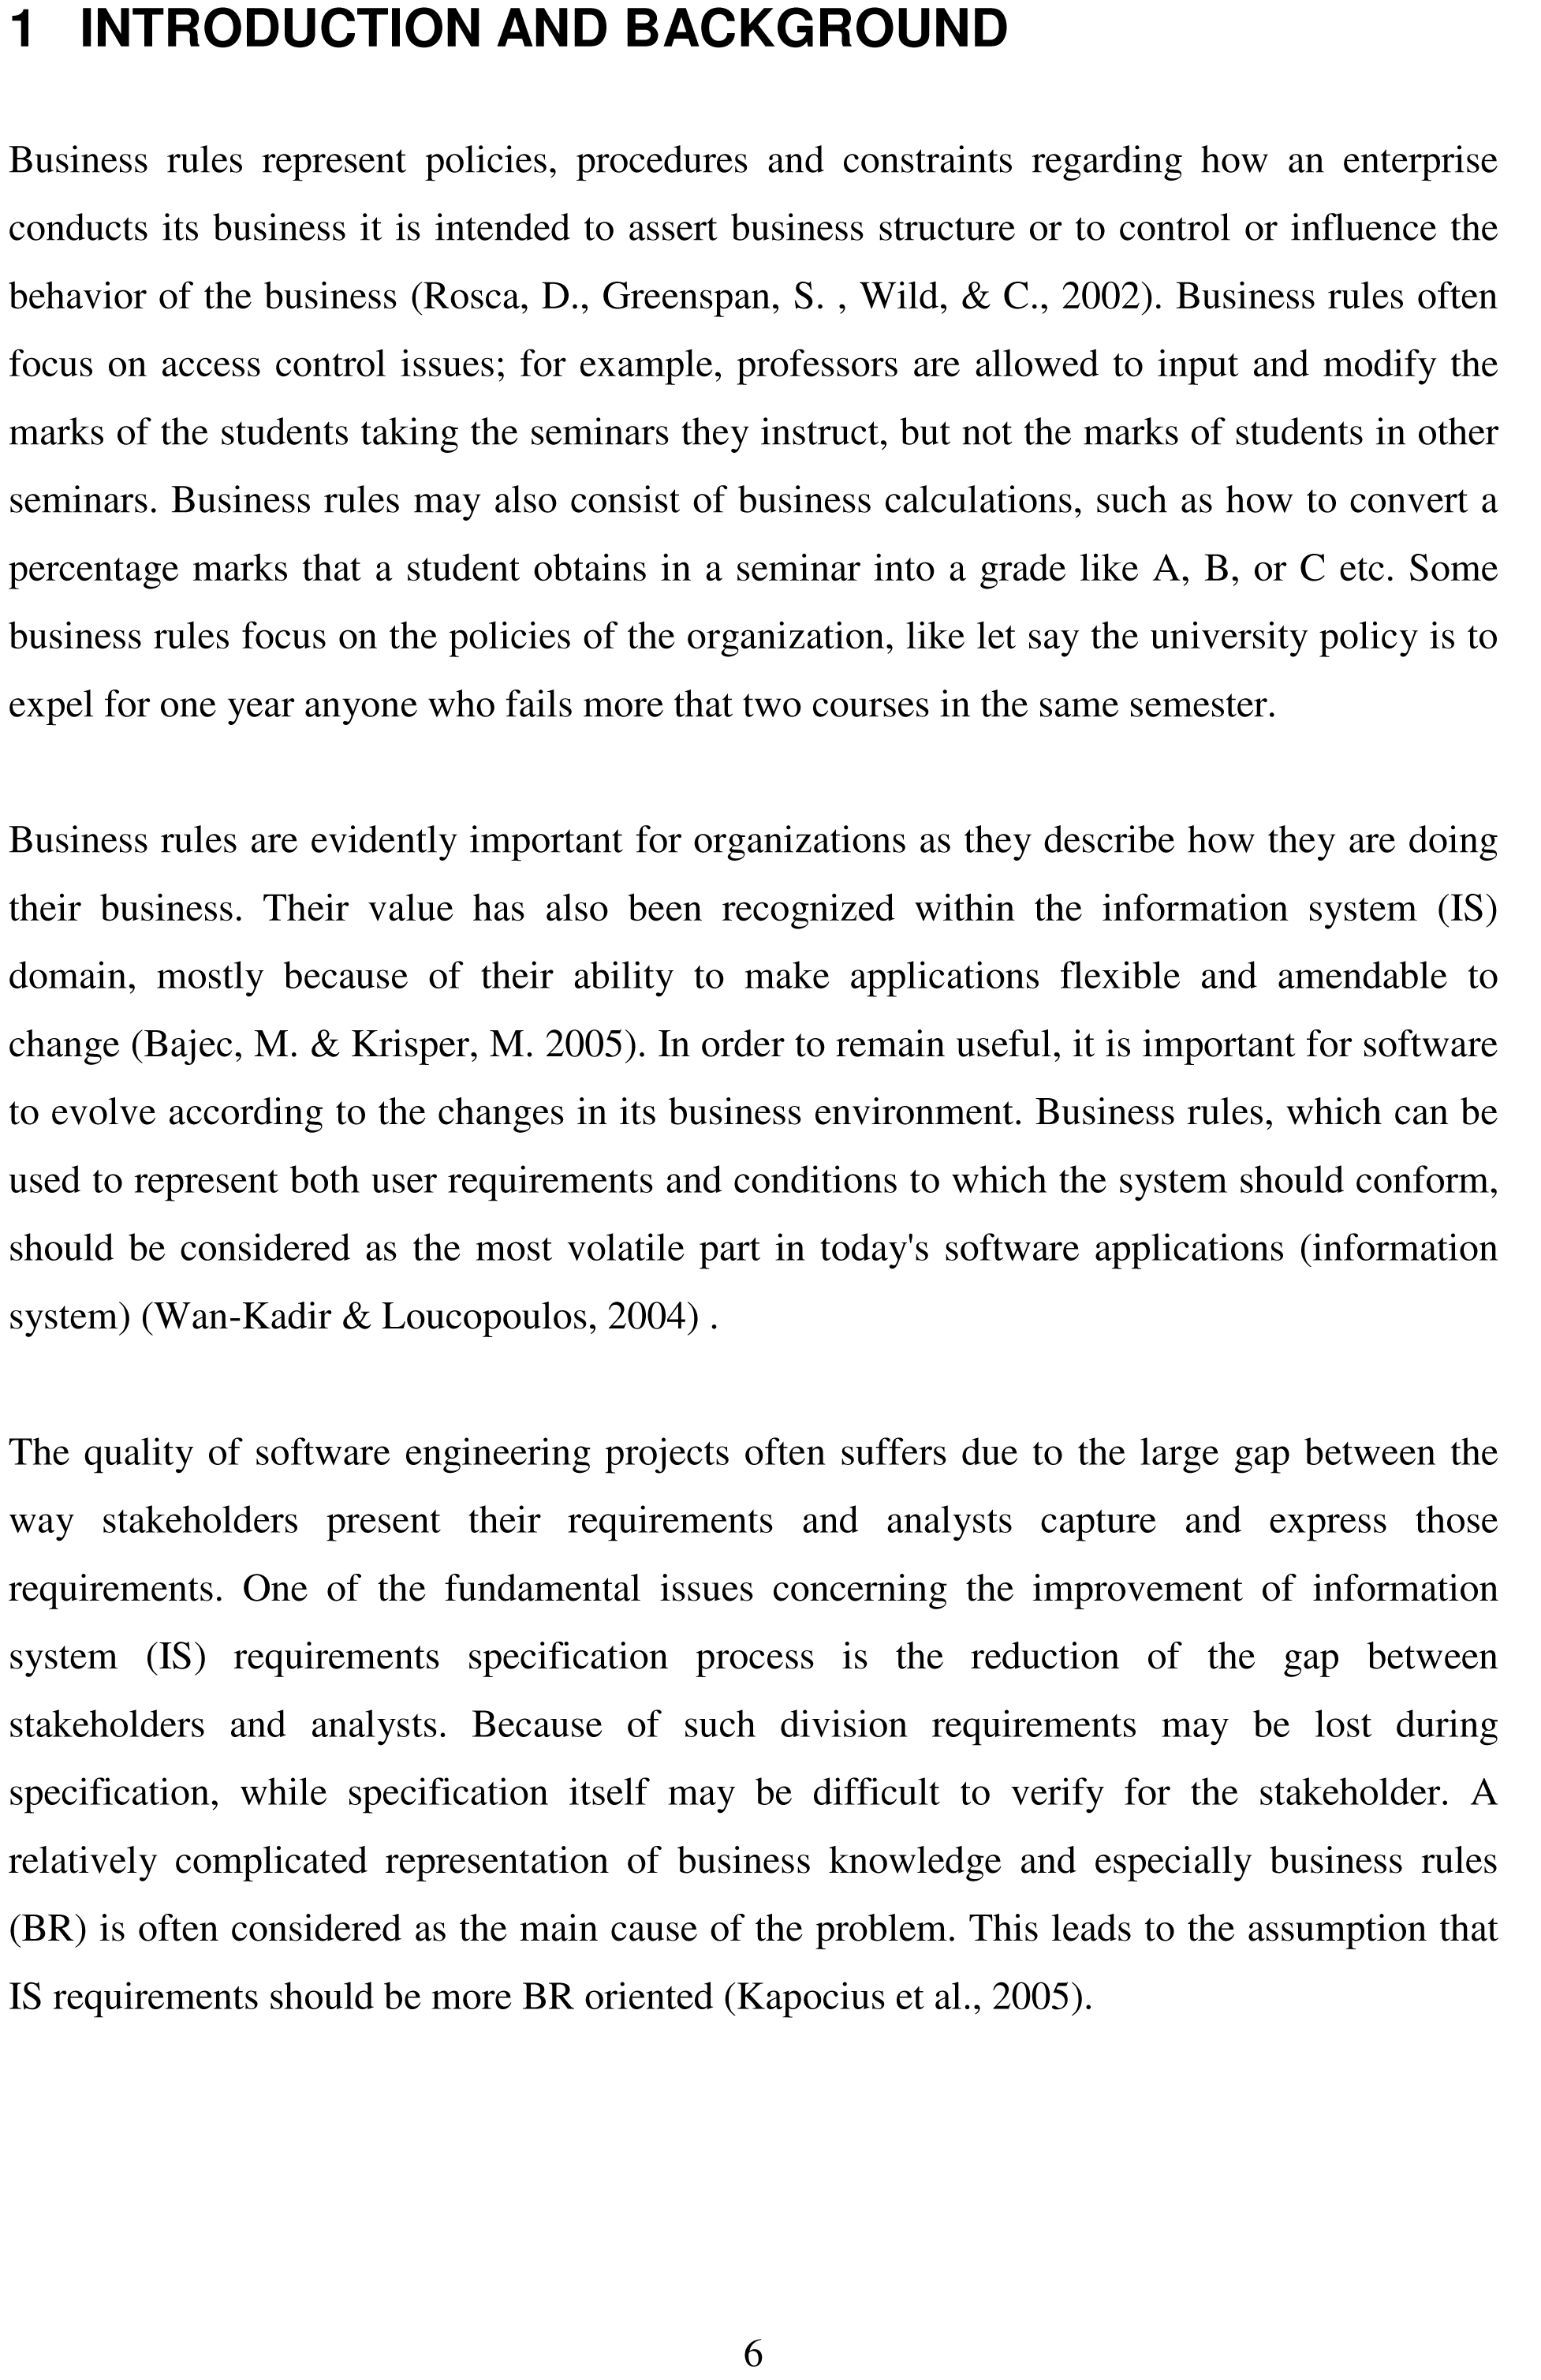 012 Opening Sentences For Essays Thesis Free Sample1 Essay Unique Good Closing Examples Great Introductory Ielts Full